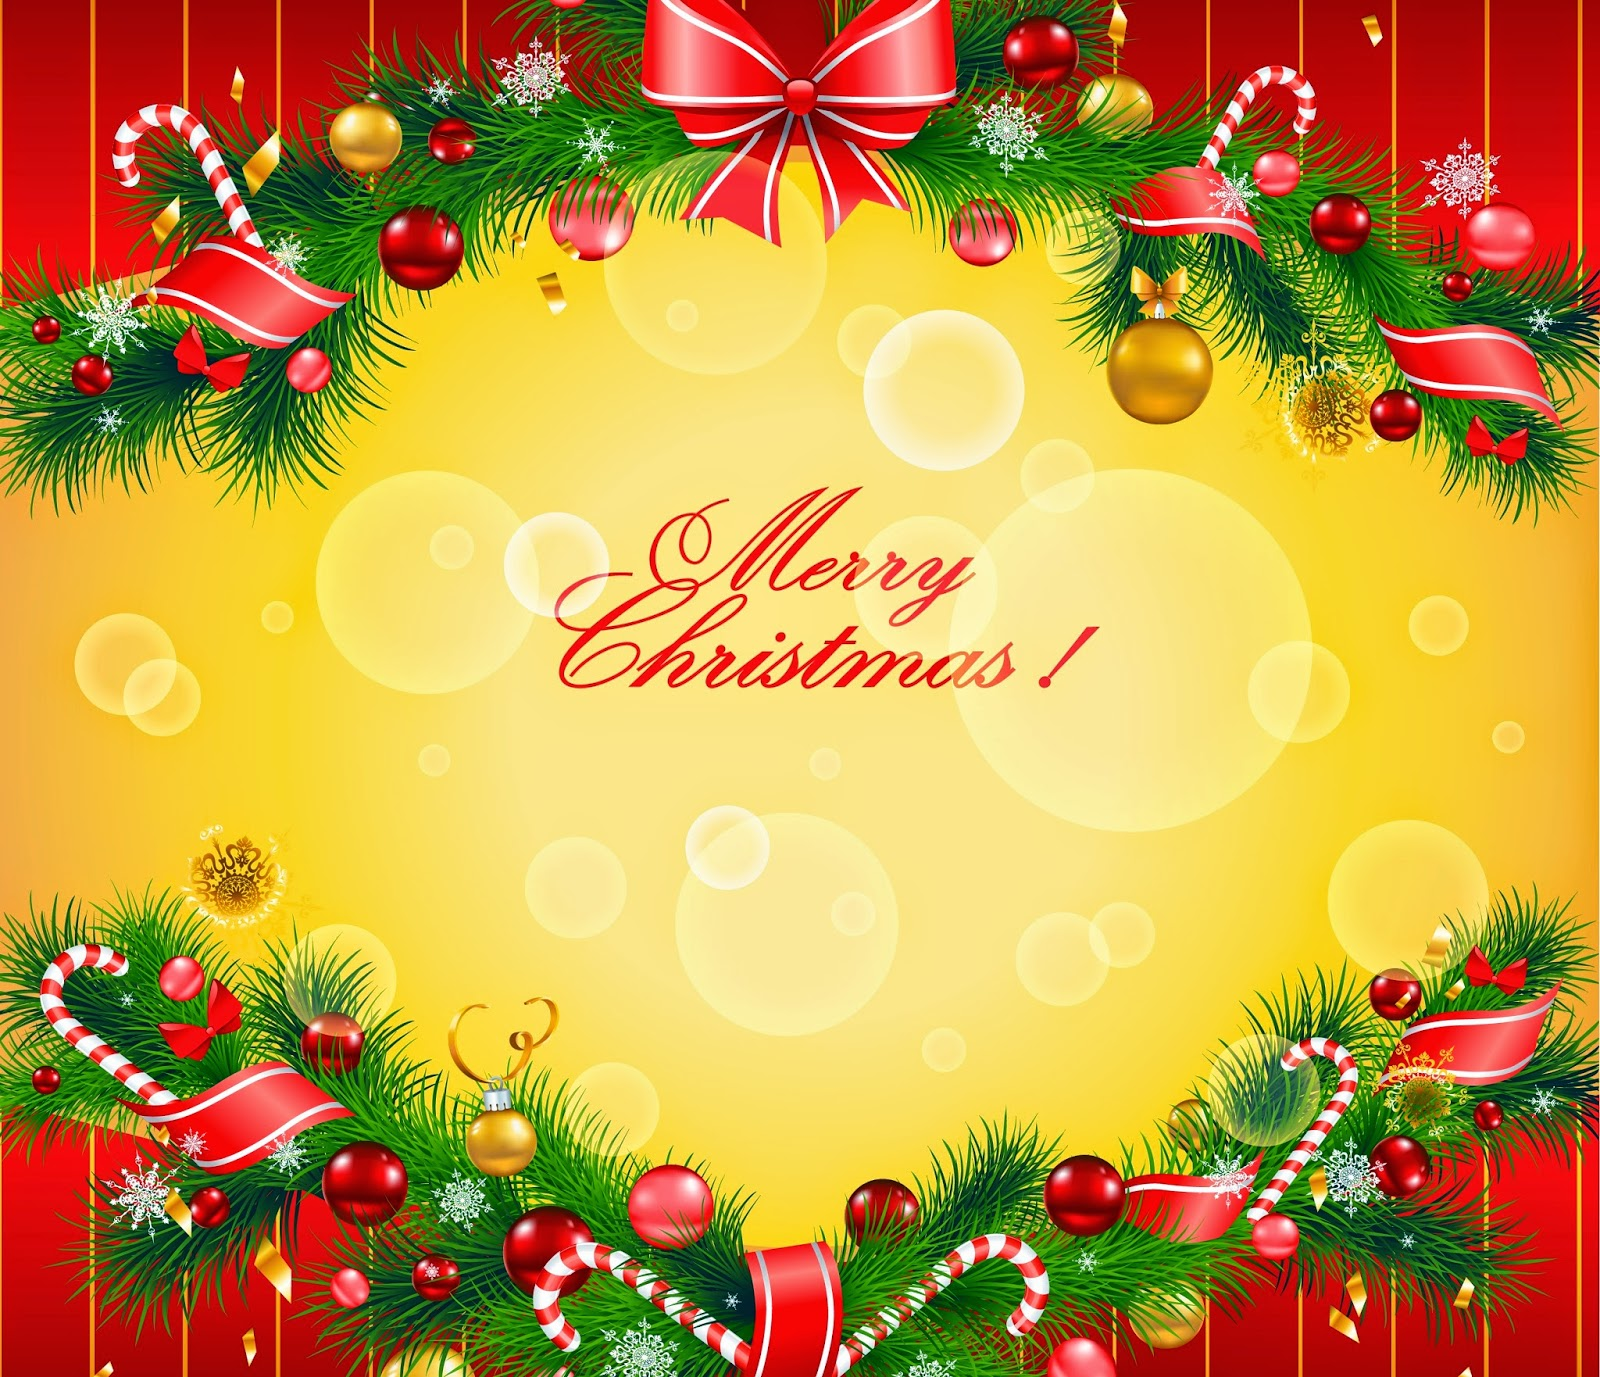 happy-xmas-wishes-greetings-card-HD-template-free-download-3421x2944.jpg